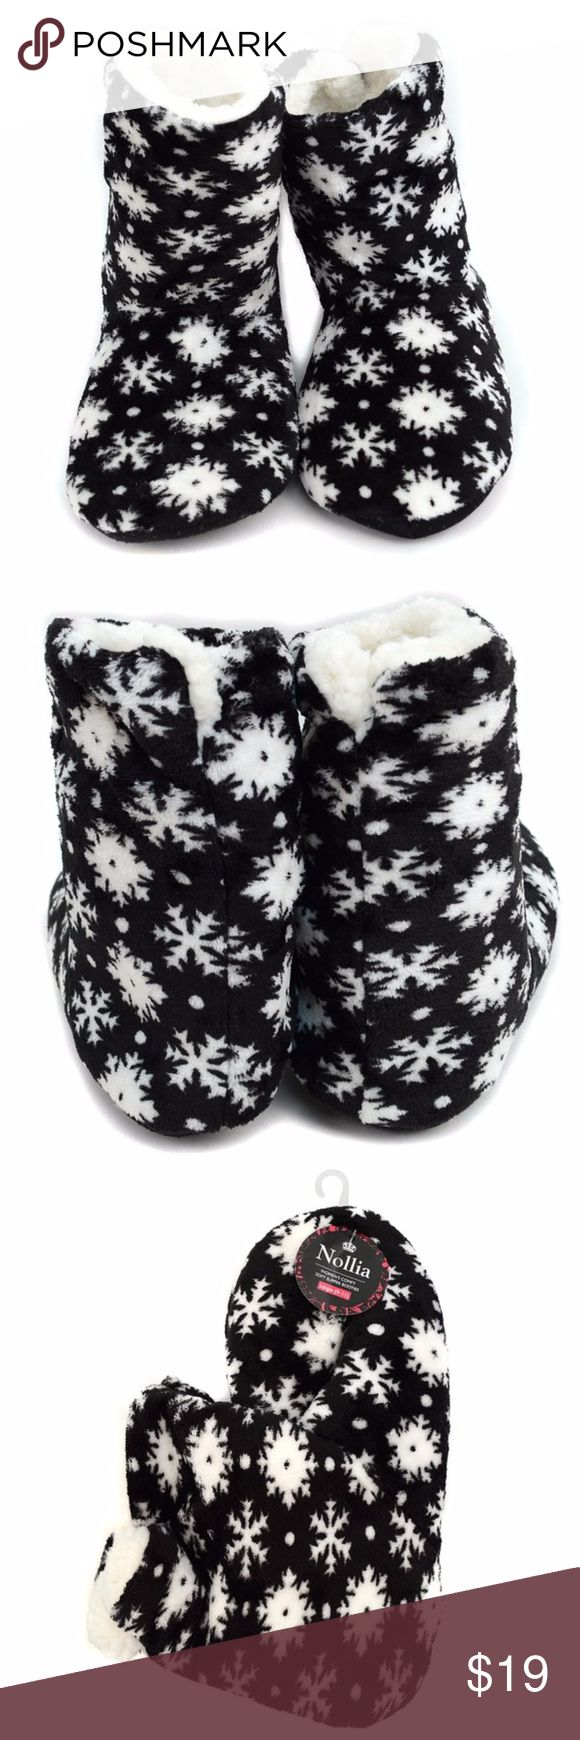 """Winter Snowflake Slippers Faux Fur Non-Slip Bottom Winter Snowflake Slippers Faux Fur Non-Slip Bottom Holiday Winter Gift  The slipper is perfect to keep your feet warm! The inside is entirely lined with super soft faux fur. Can be worn to cover your ankles or folded down!  Perfect for everyday wear or as a gift  Fuzzy exterior, Ultra soft fleecy interior lining, Beaded rubber bottoms for non-slip grip  S fits: ladies shoe size 5-6 Bottom Size : 9.5"""" M fits: ladies shoe size 7-8 Bottom Size…"""